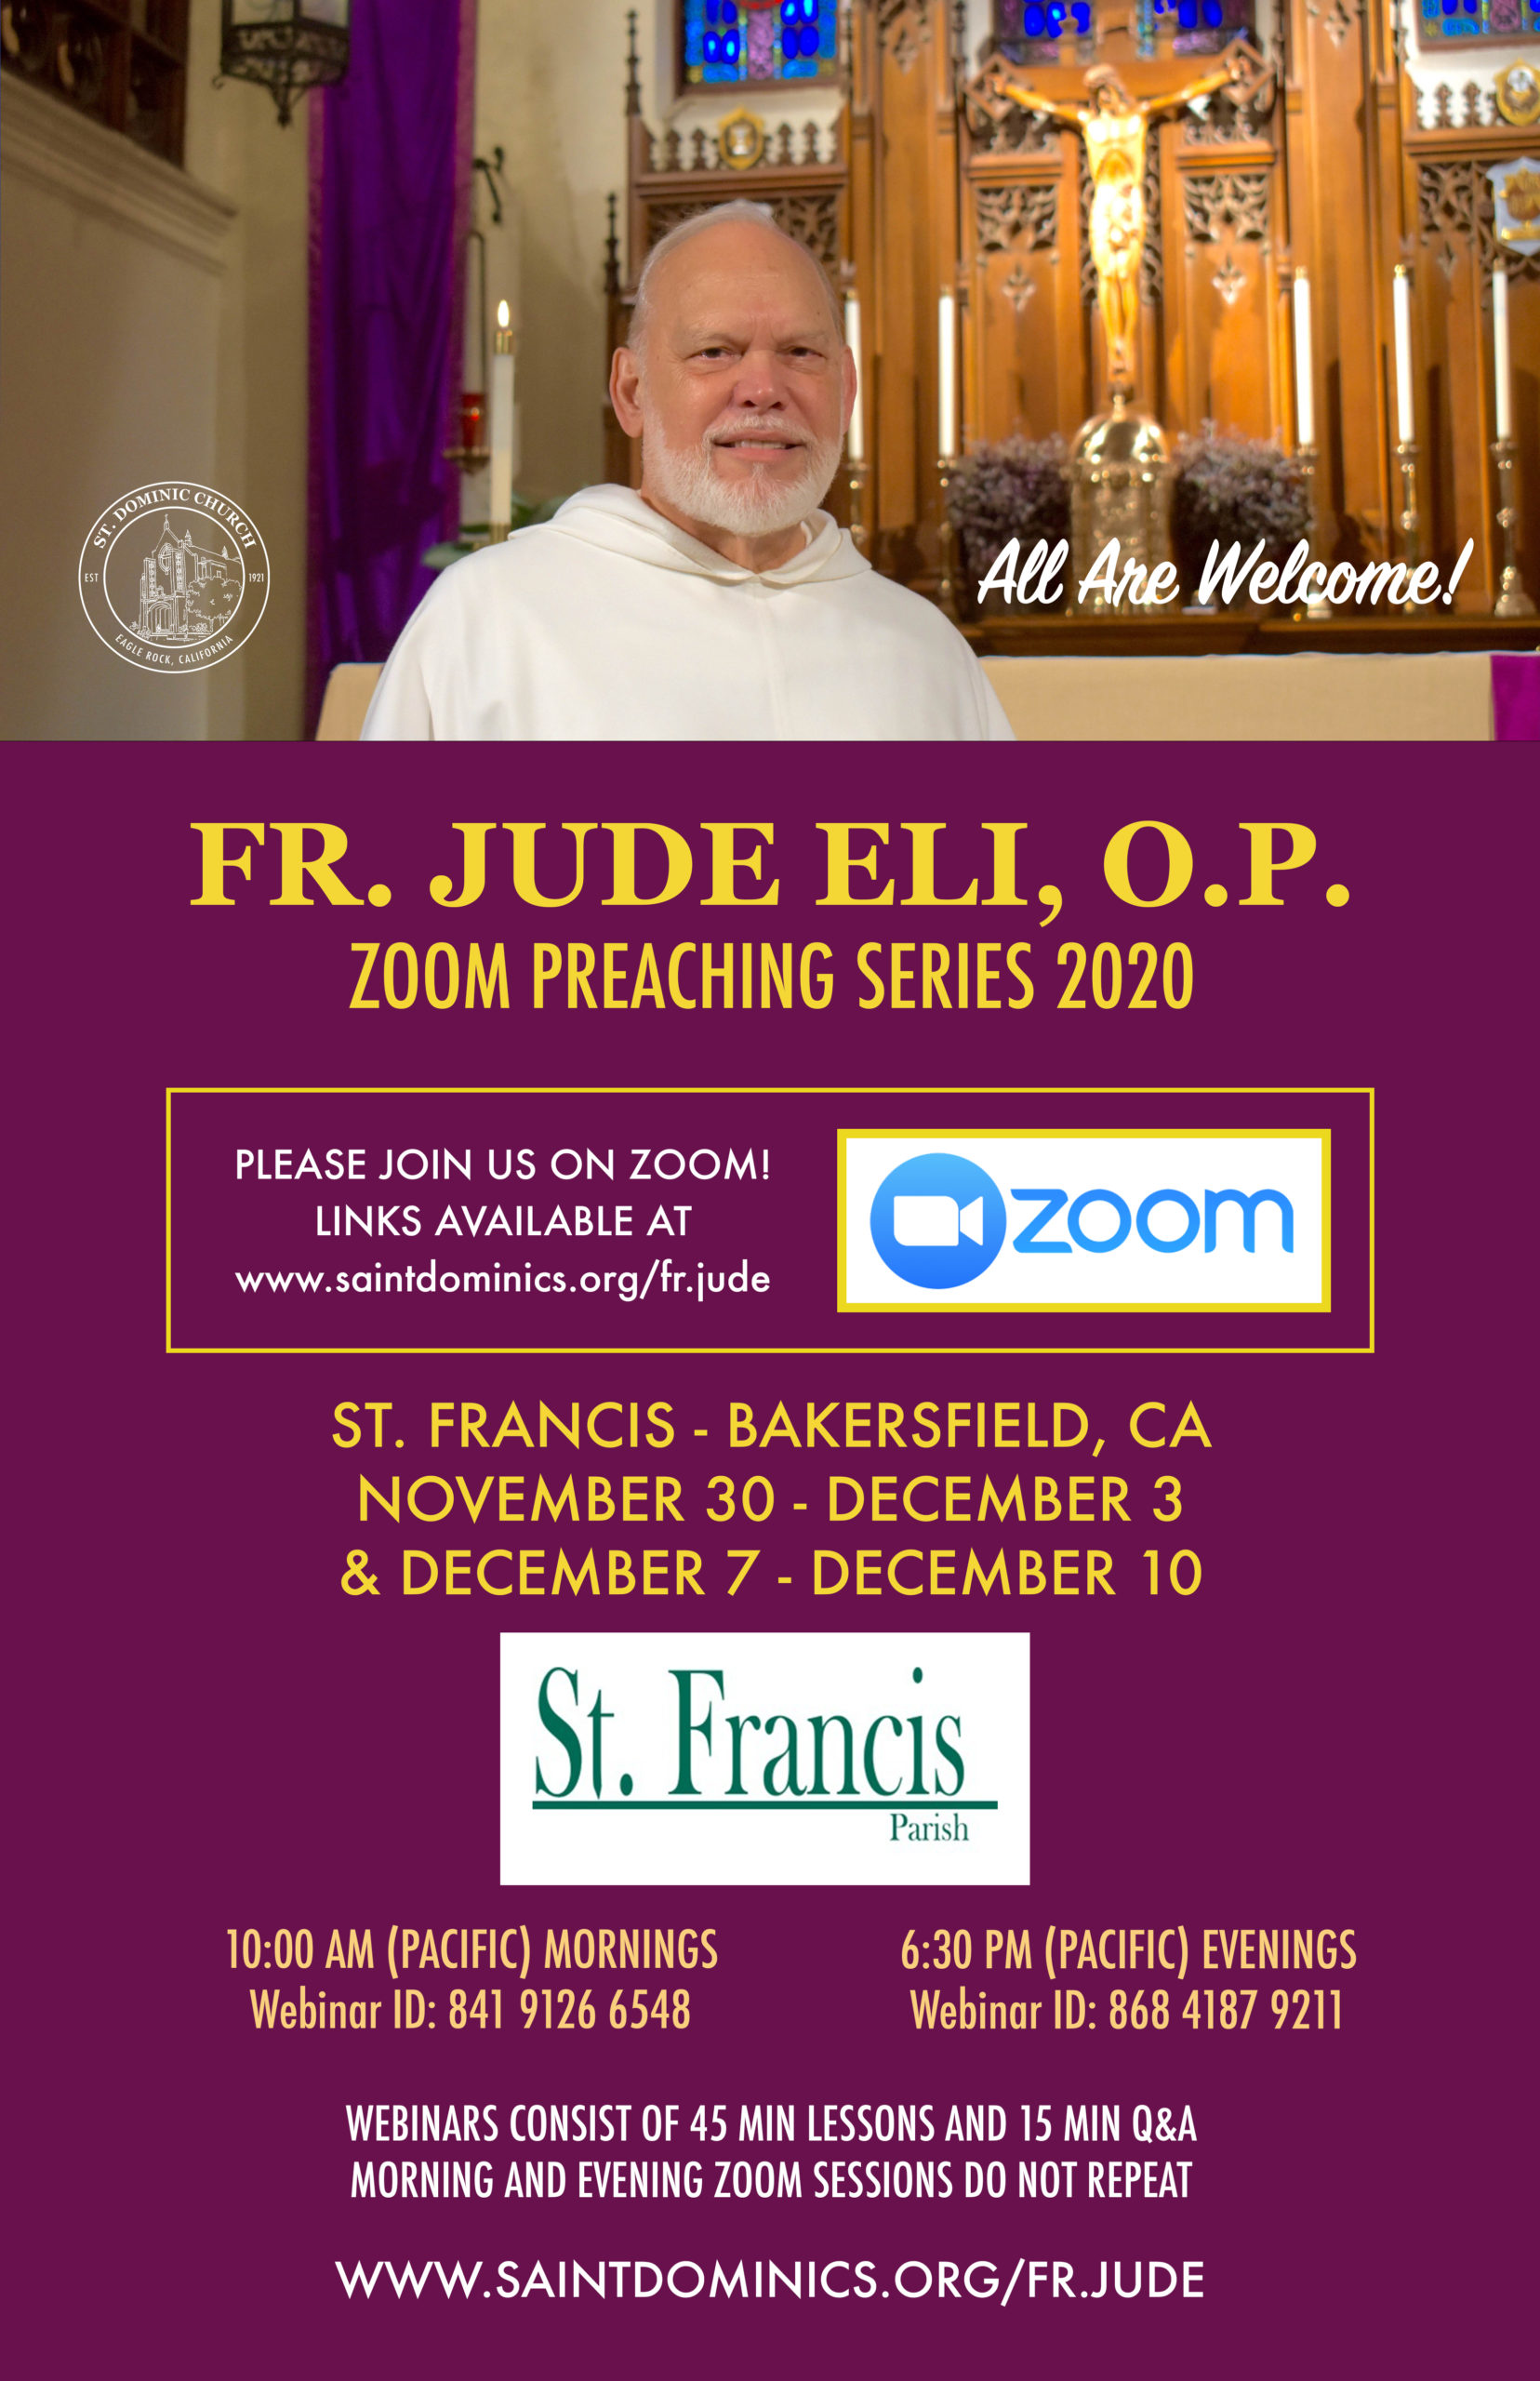 Fr. Jude Eli, O.P. Zoom Preaching Series 2020-Morning Classes